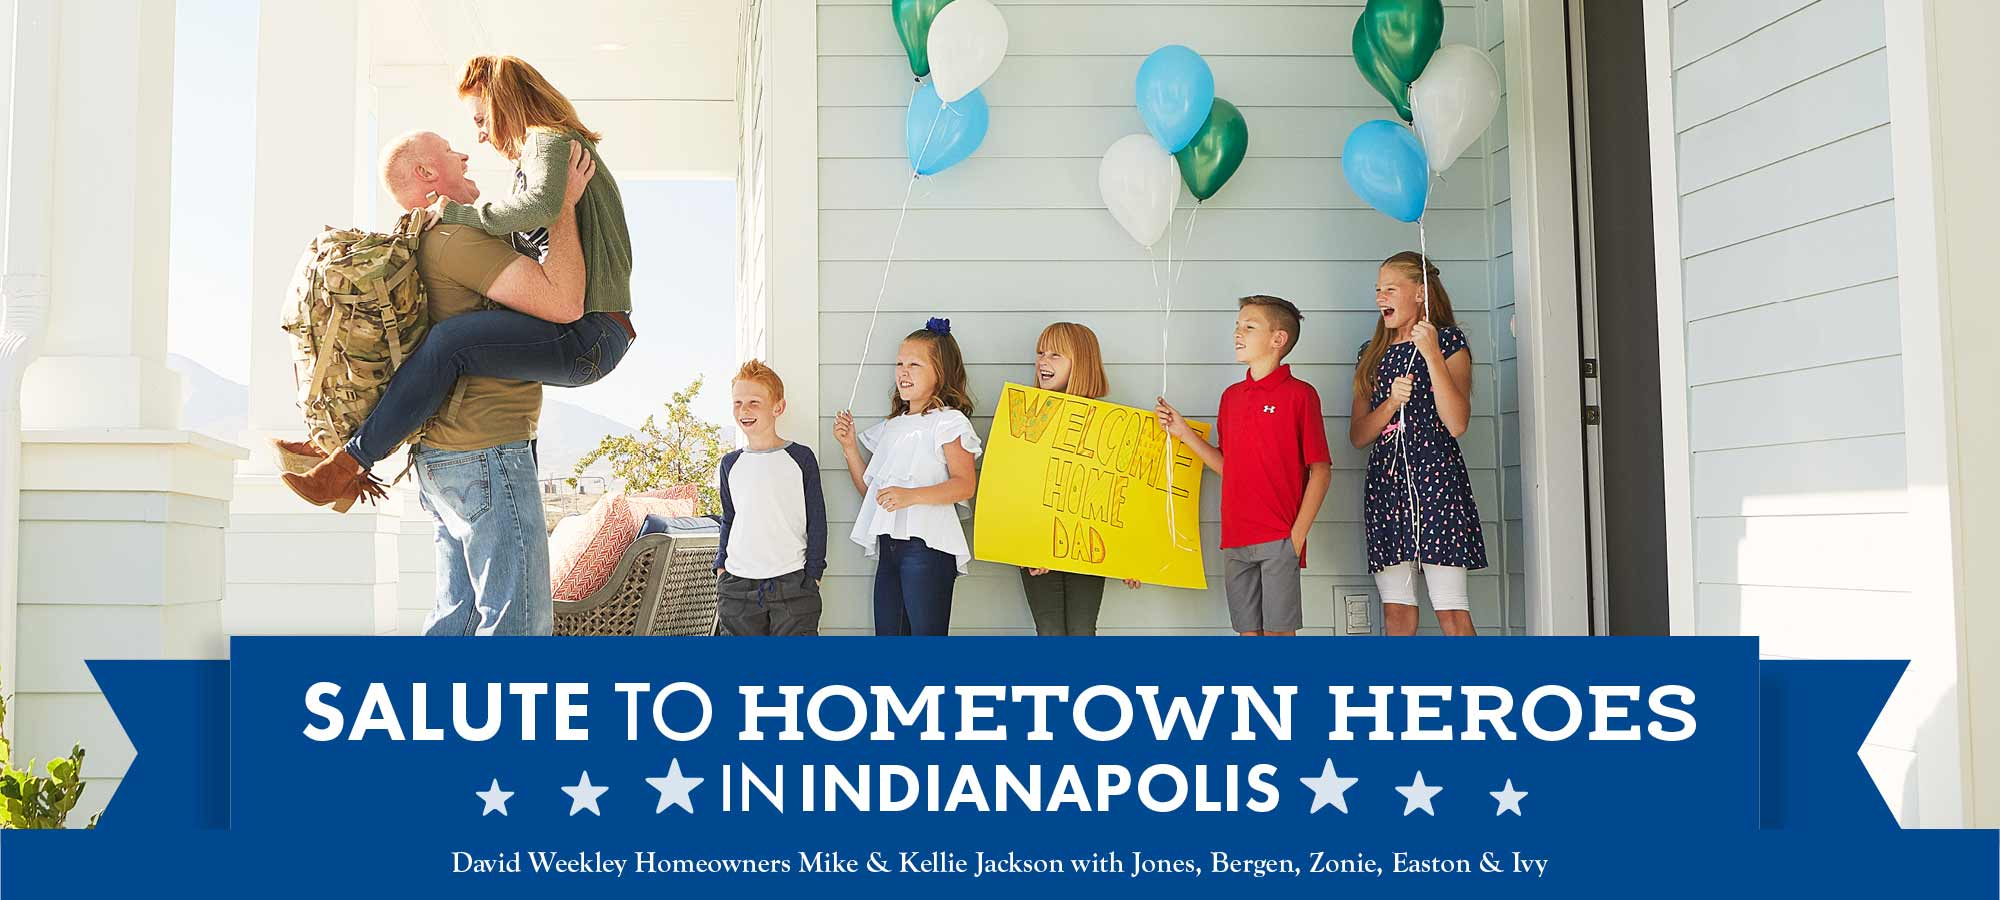 Salute to Hometown Heroes in Indianapolis!